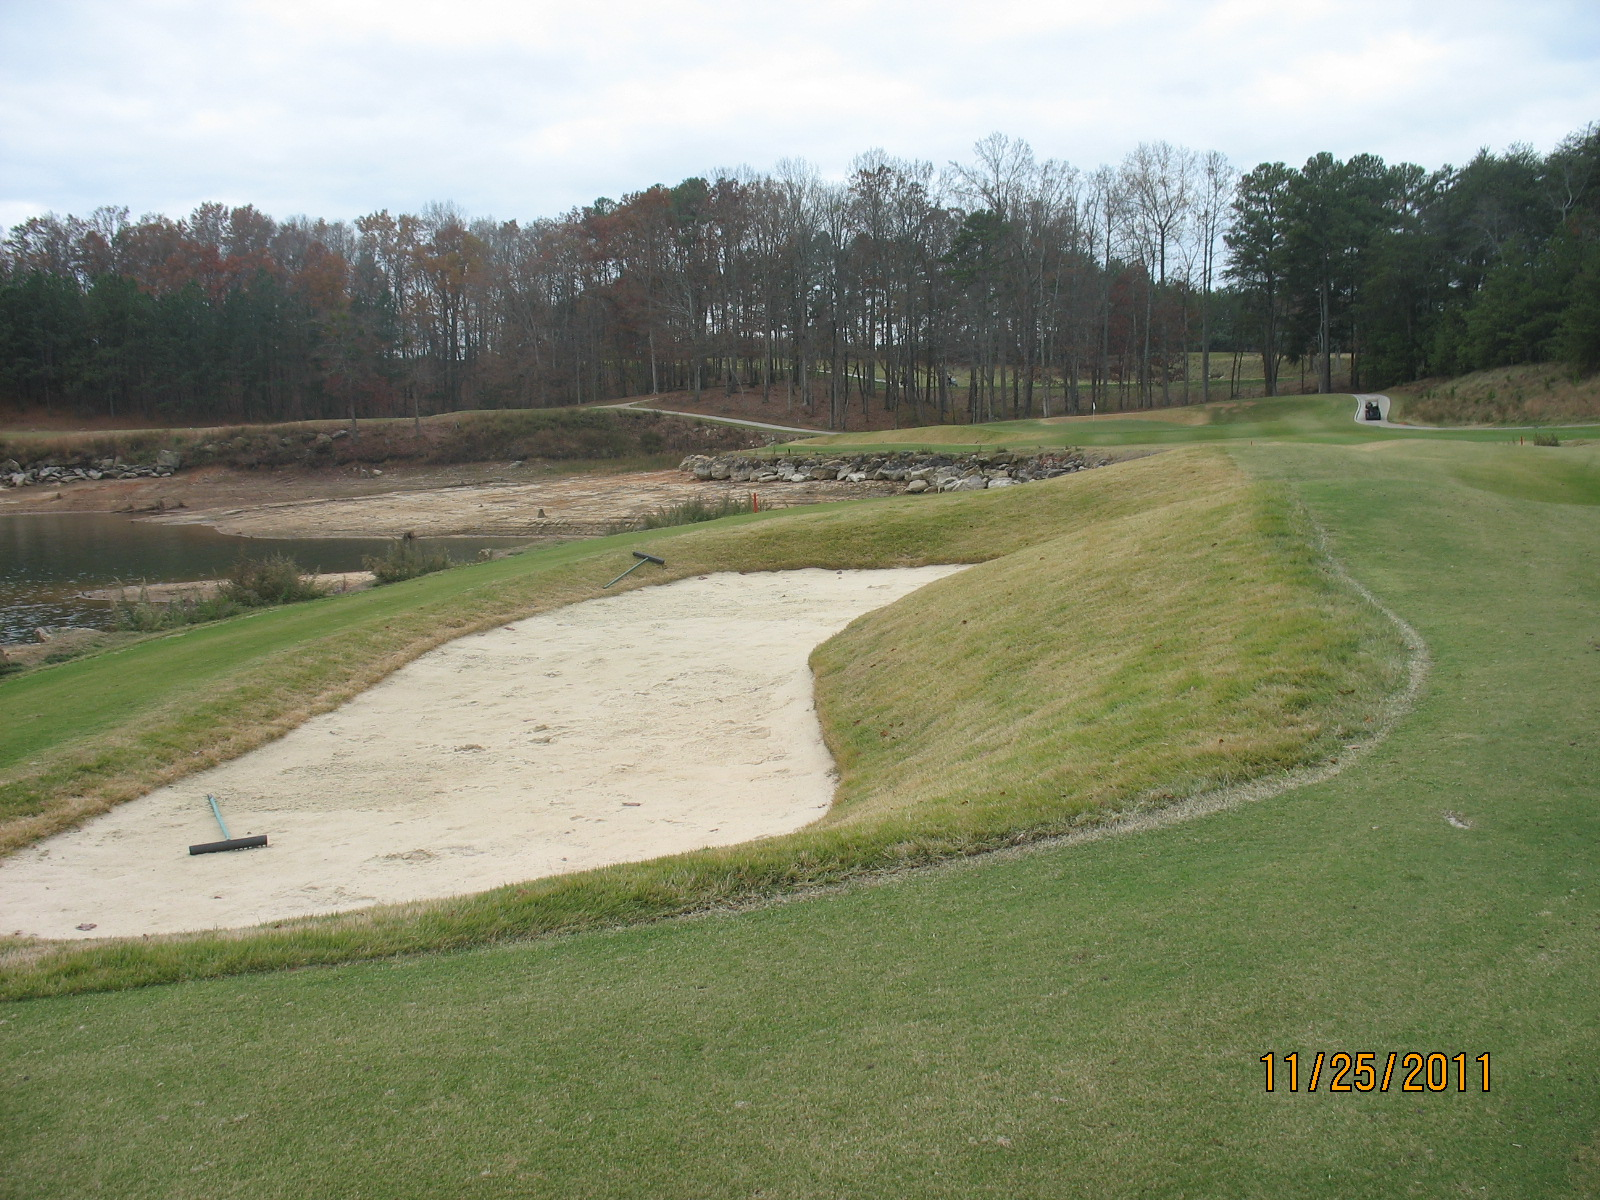 Legacy Golf Course, Lanier Islands, Buford, GA. K likes. The NEW Legacy on Lanier Golf Club represents a return to the Golden Era of Golf from the /5().